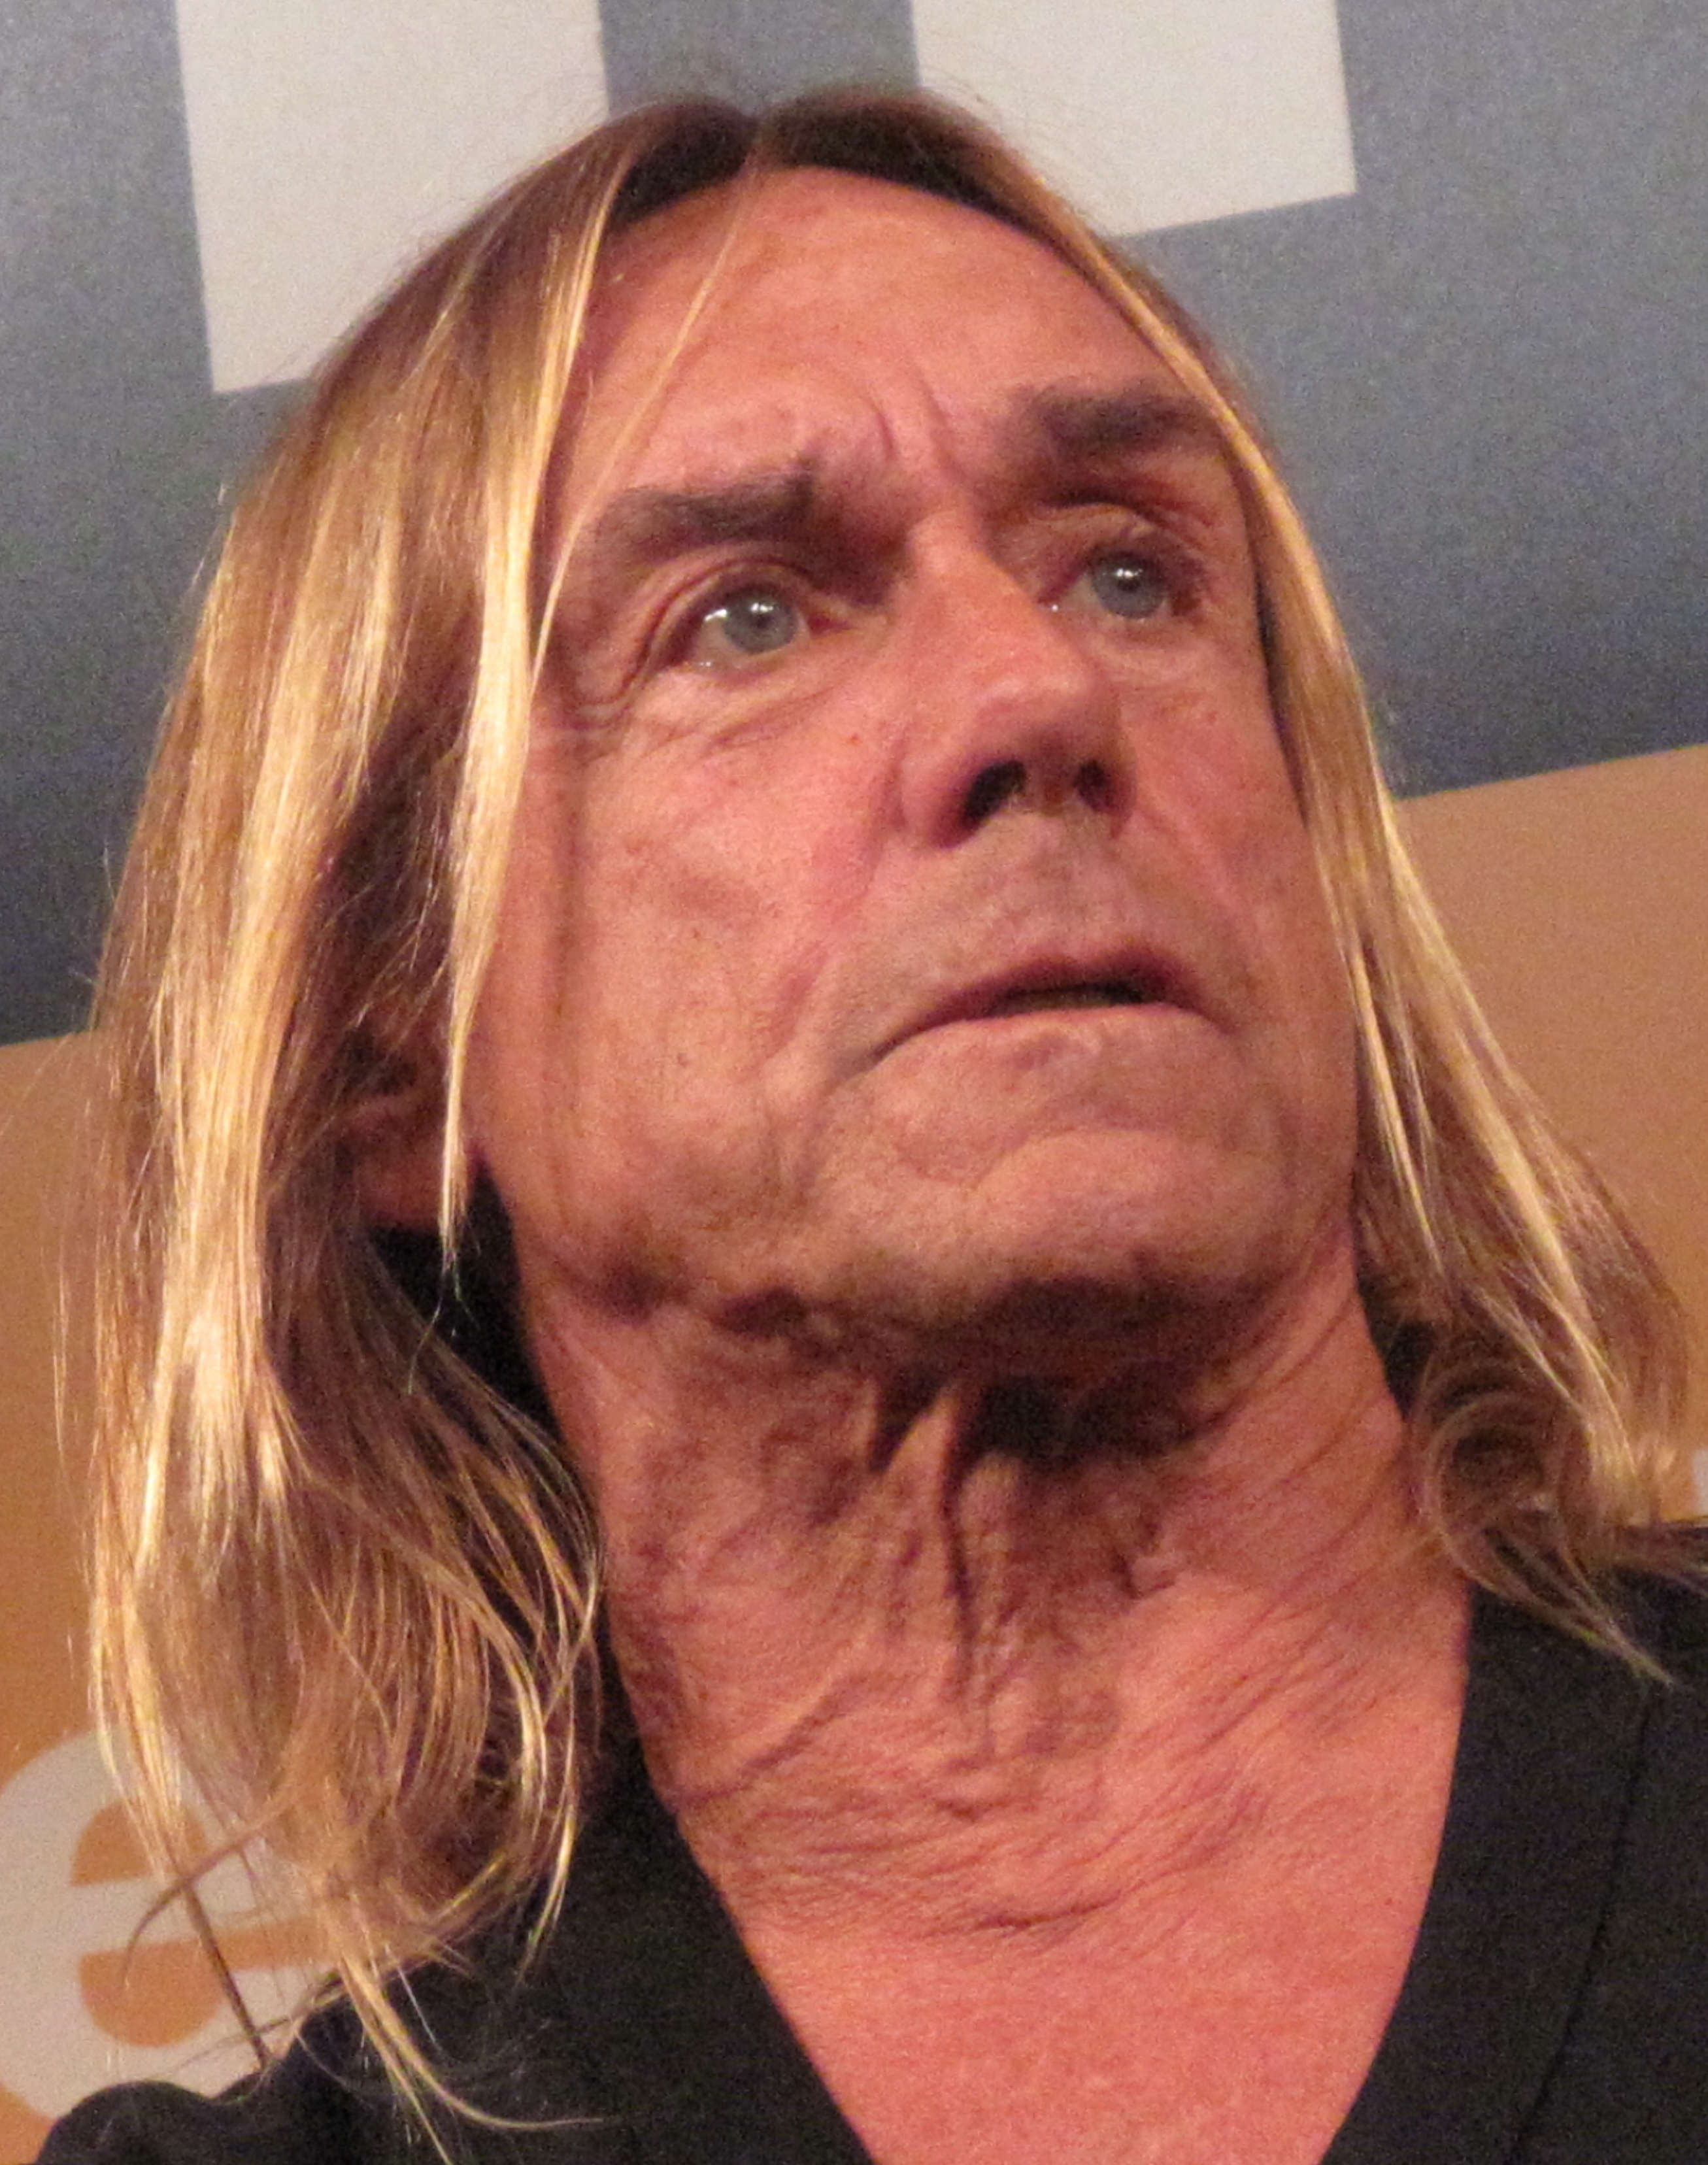 The 73-year old son of father (?) and mother(?) Iggy Pop in 2020 photo. Iggy Pop earned a million dollar salary - leaving the net worth at 15 million in 2020